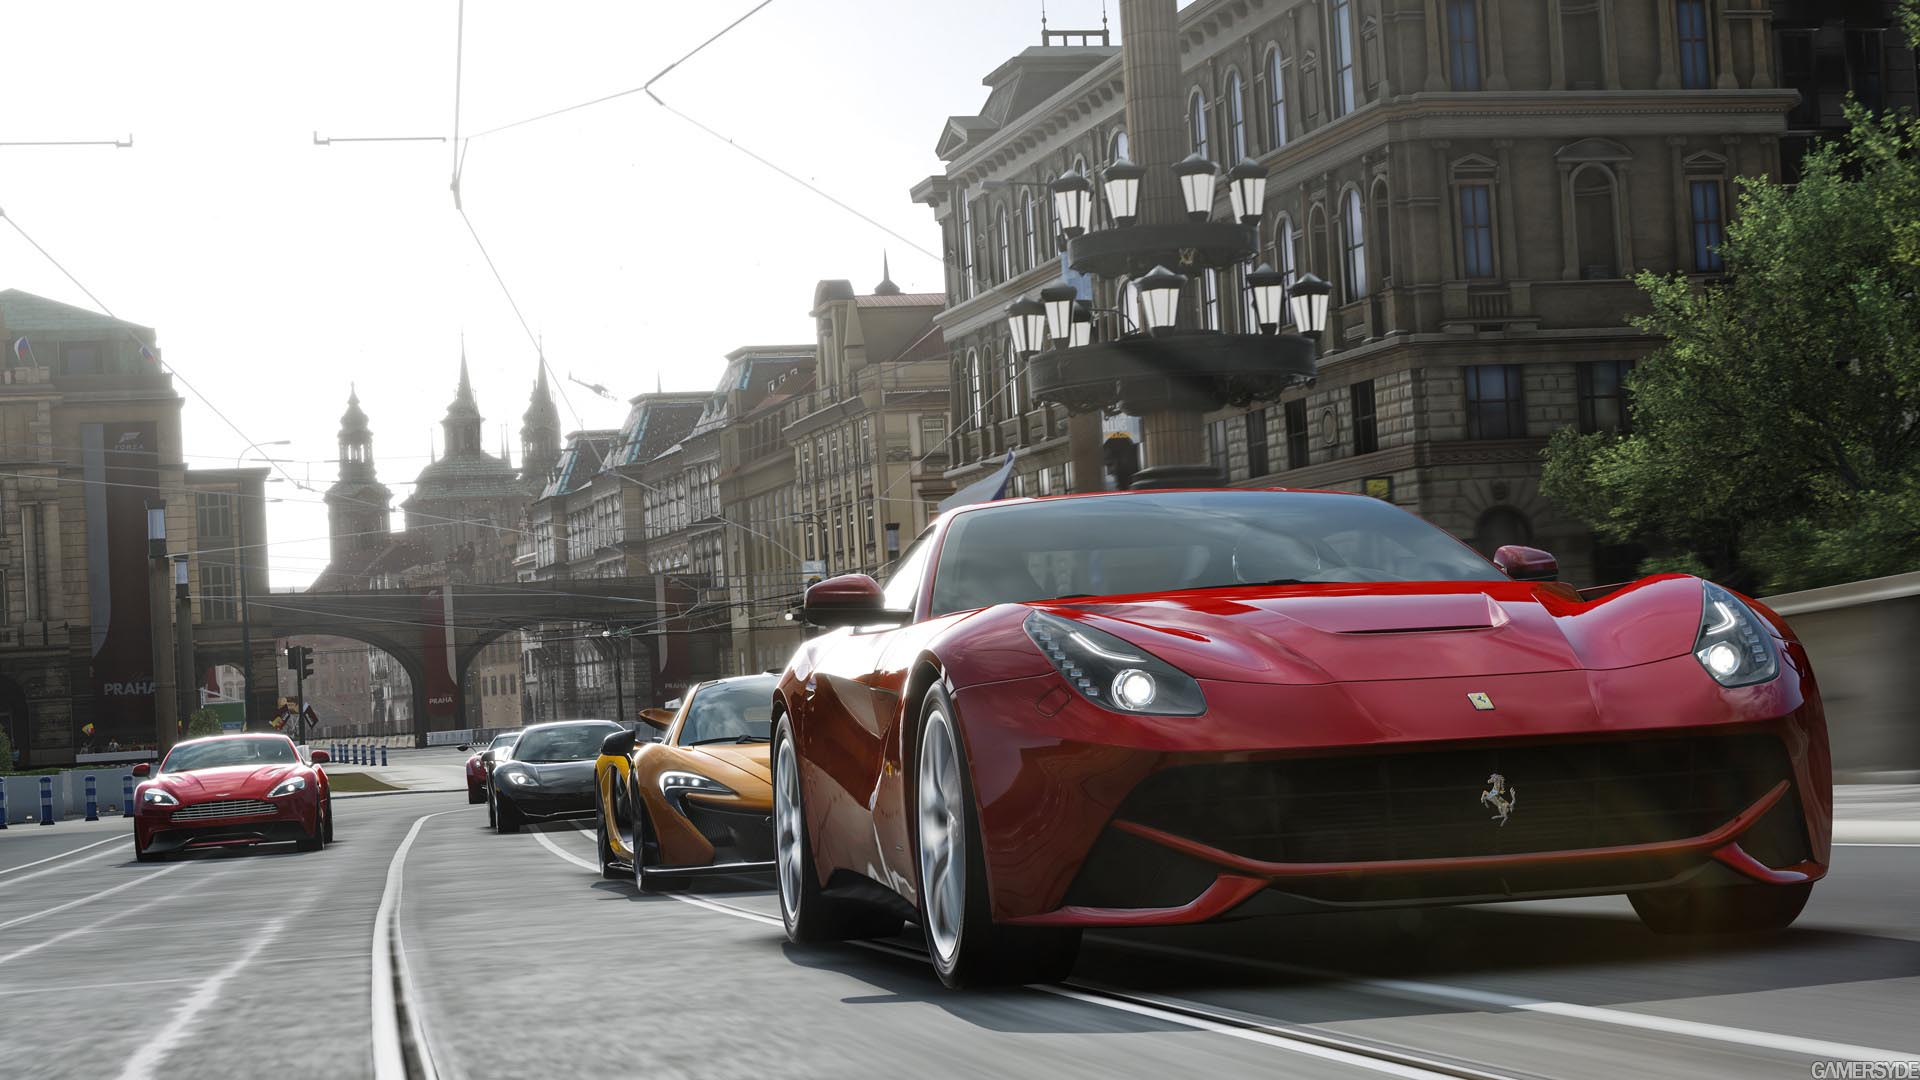 With <i>Forza 6</i> just on the horizon, it's a good time to jump back onto the track and hone your skills before taking on challengers in the new game. The locked 60 frames-per-second presentation is a mainstay of the series, and though it launched with the Xbox One almost two years ago, the slick graphics have held up in the interim. | <b>For:</b> Xbox One